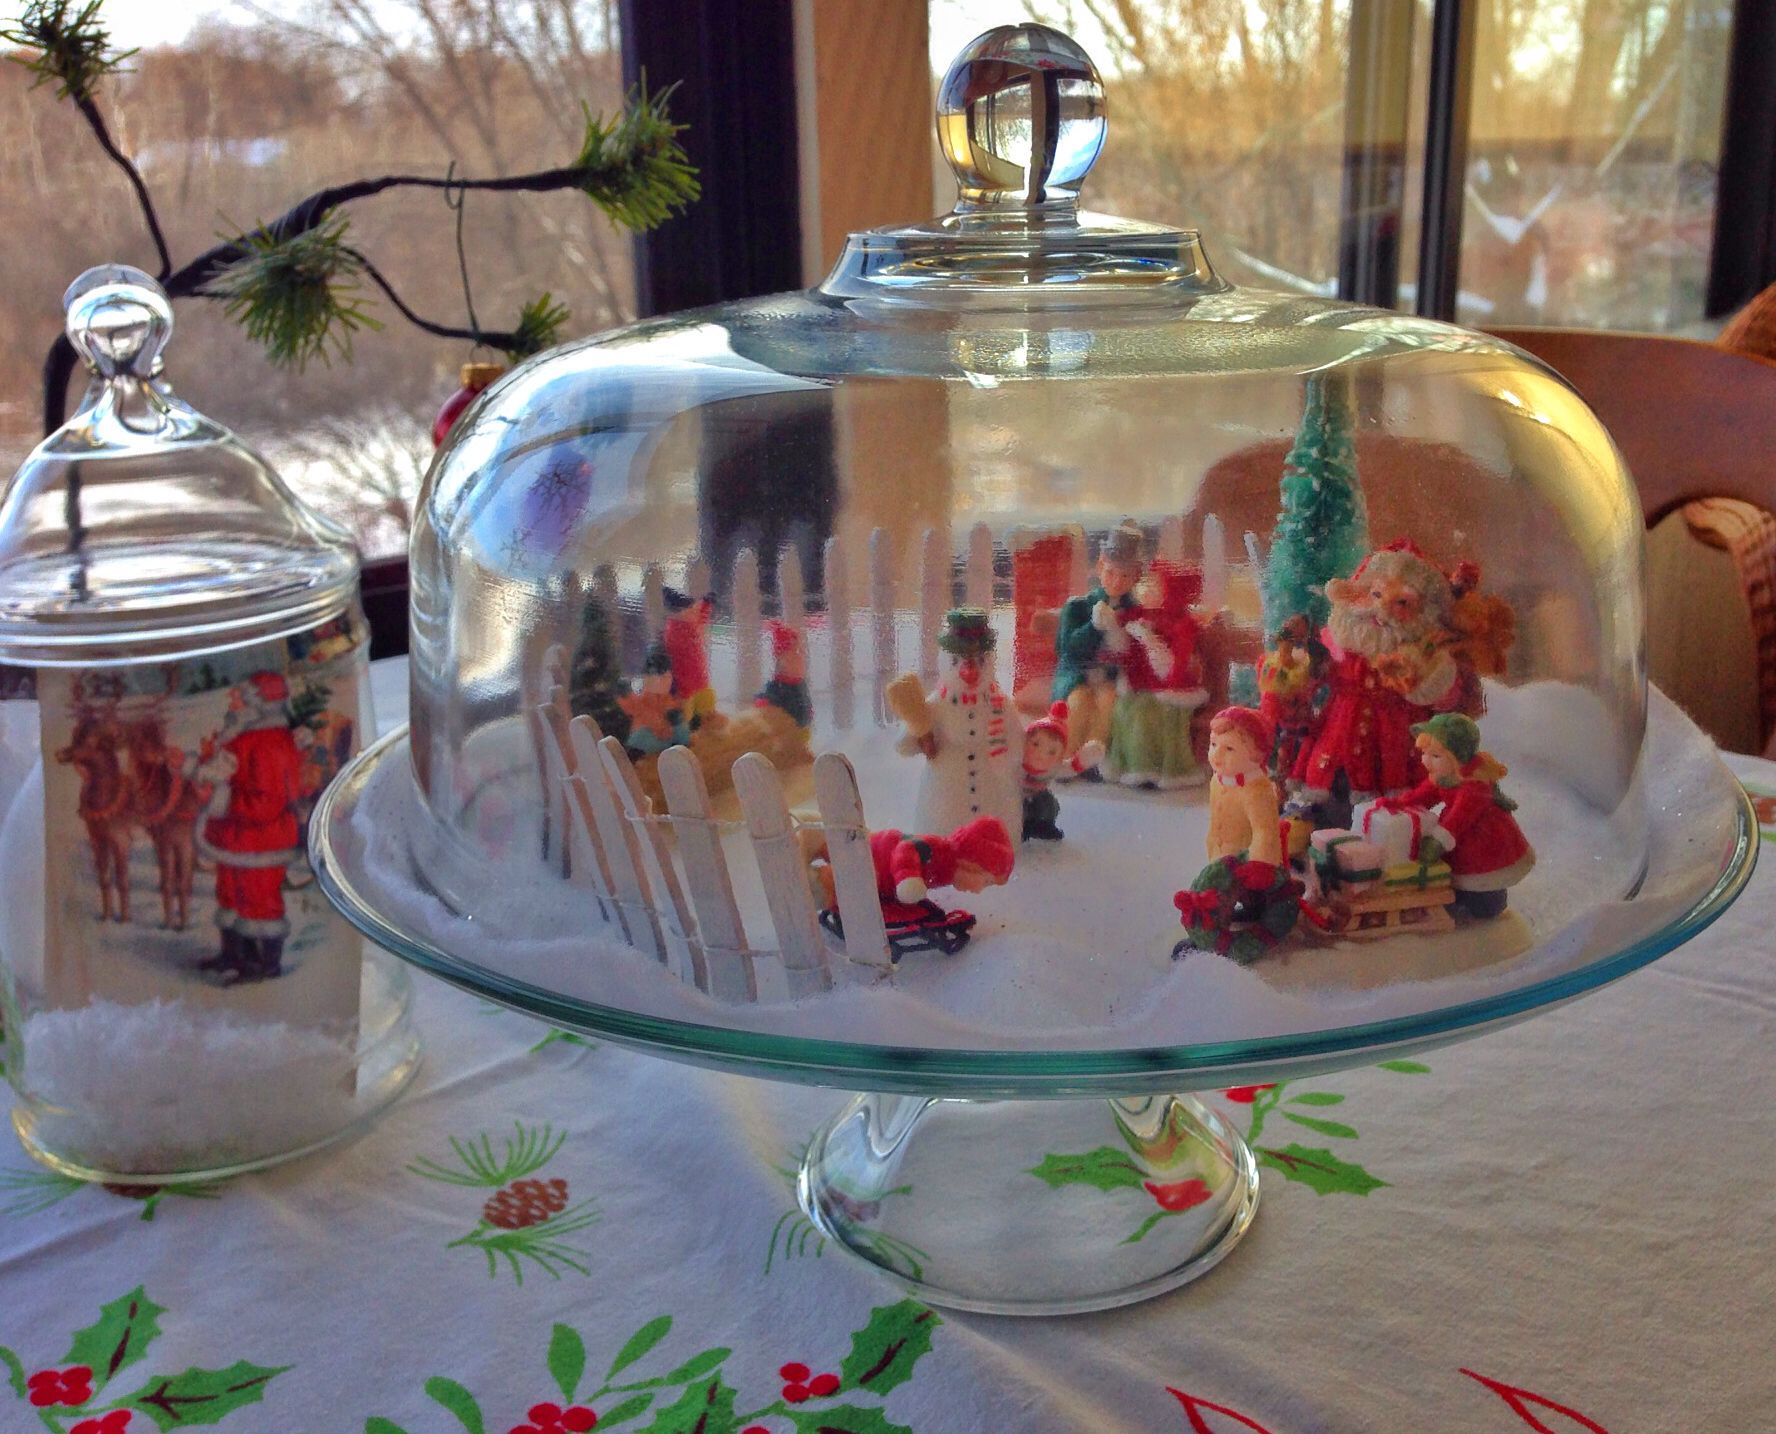 Christmas under glass covered cake plate and a christmas